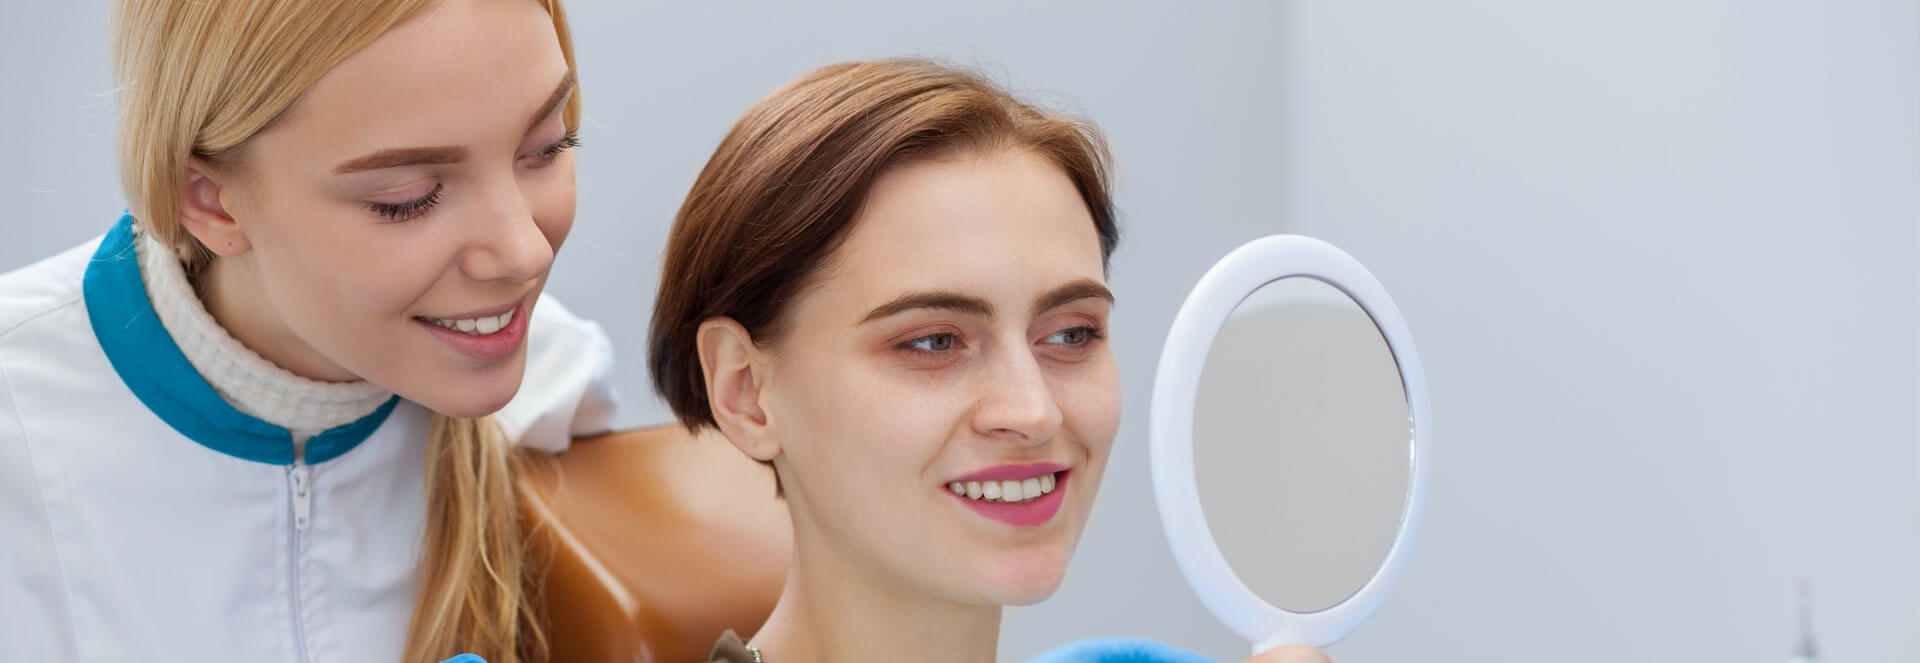 Female patient looking at her new dental crowns using a hand mirror while dental assistant is behind